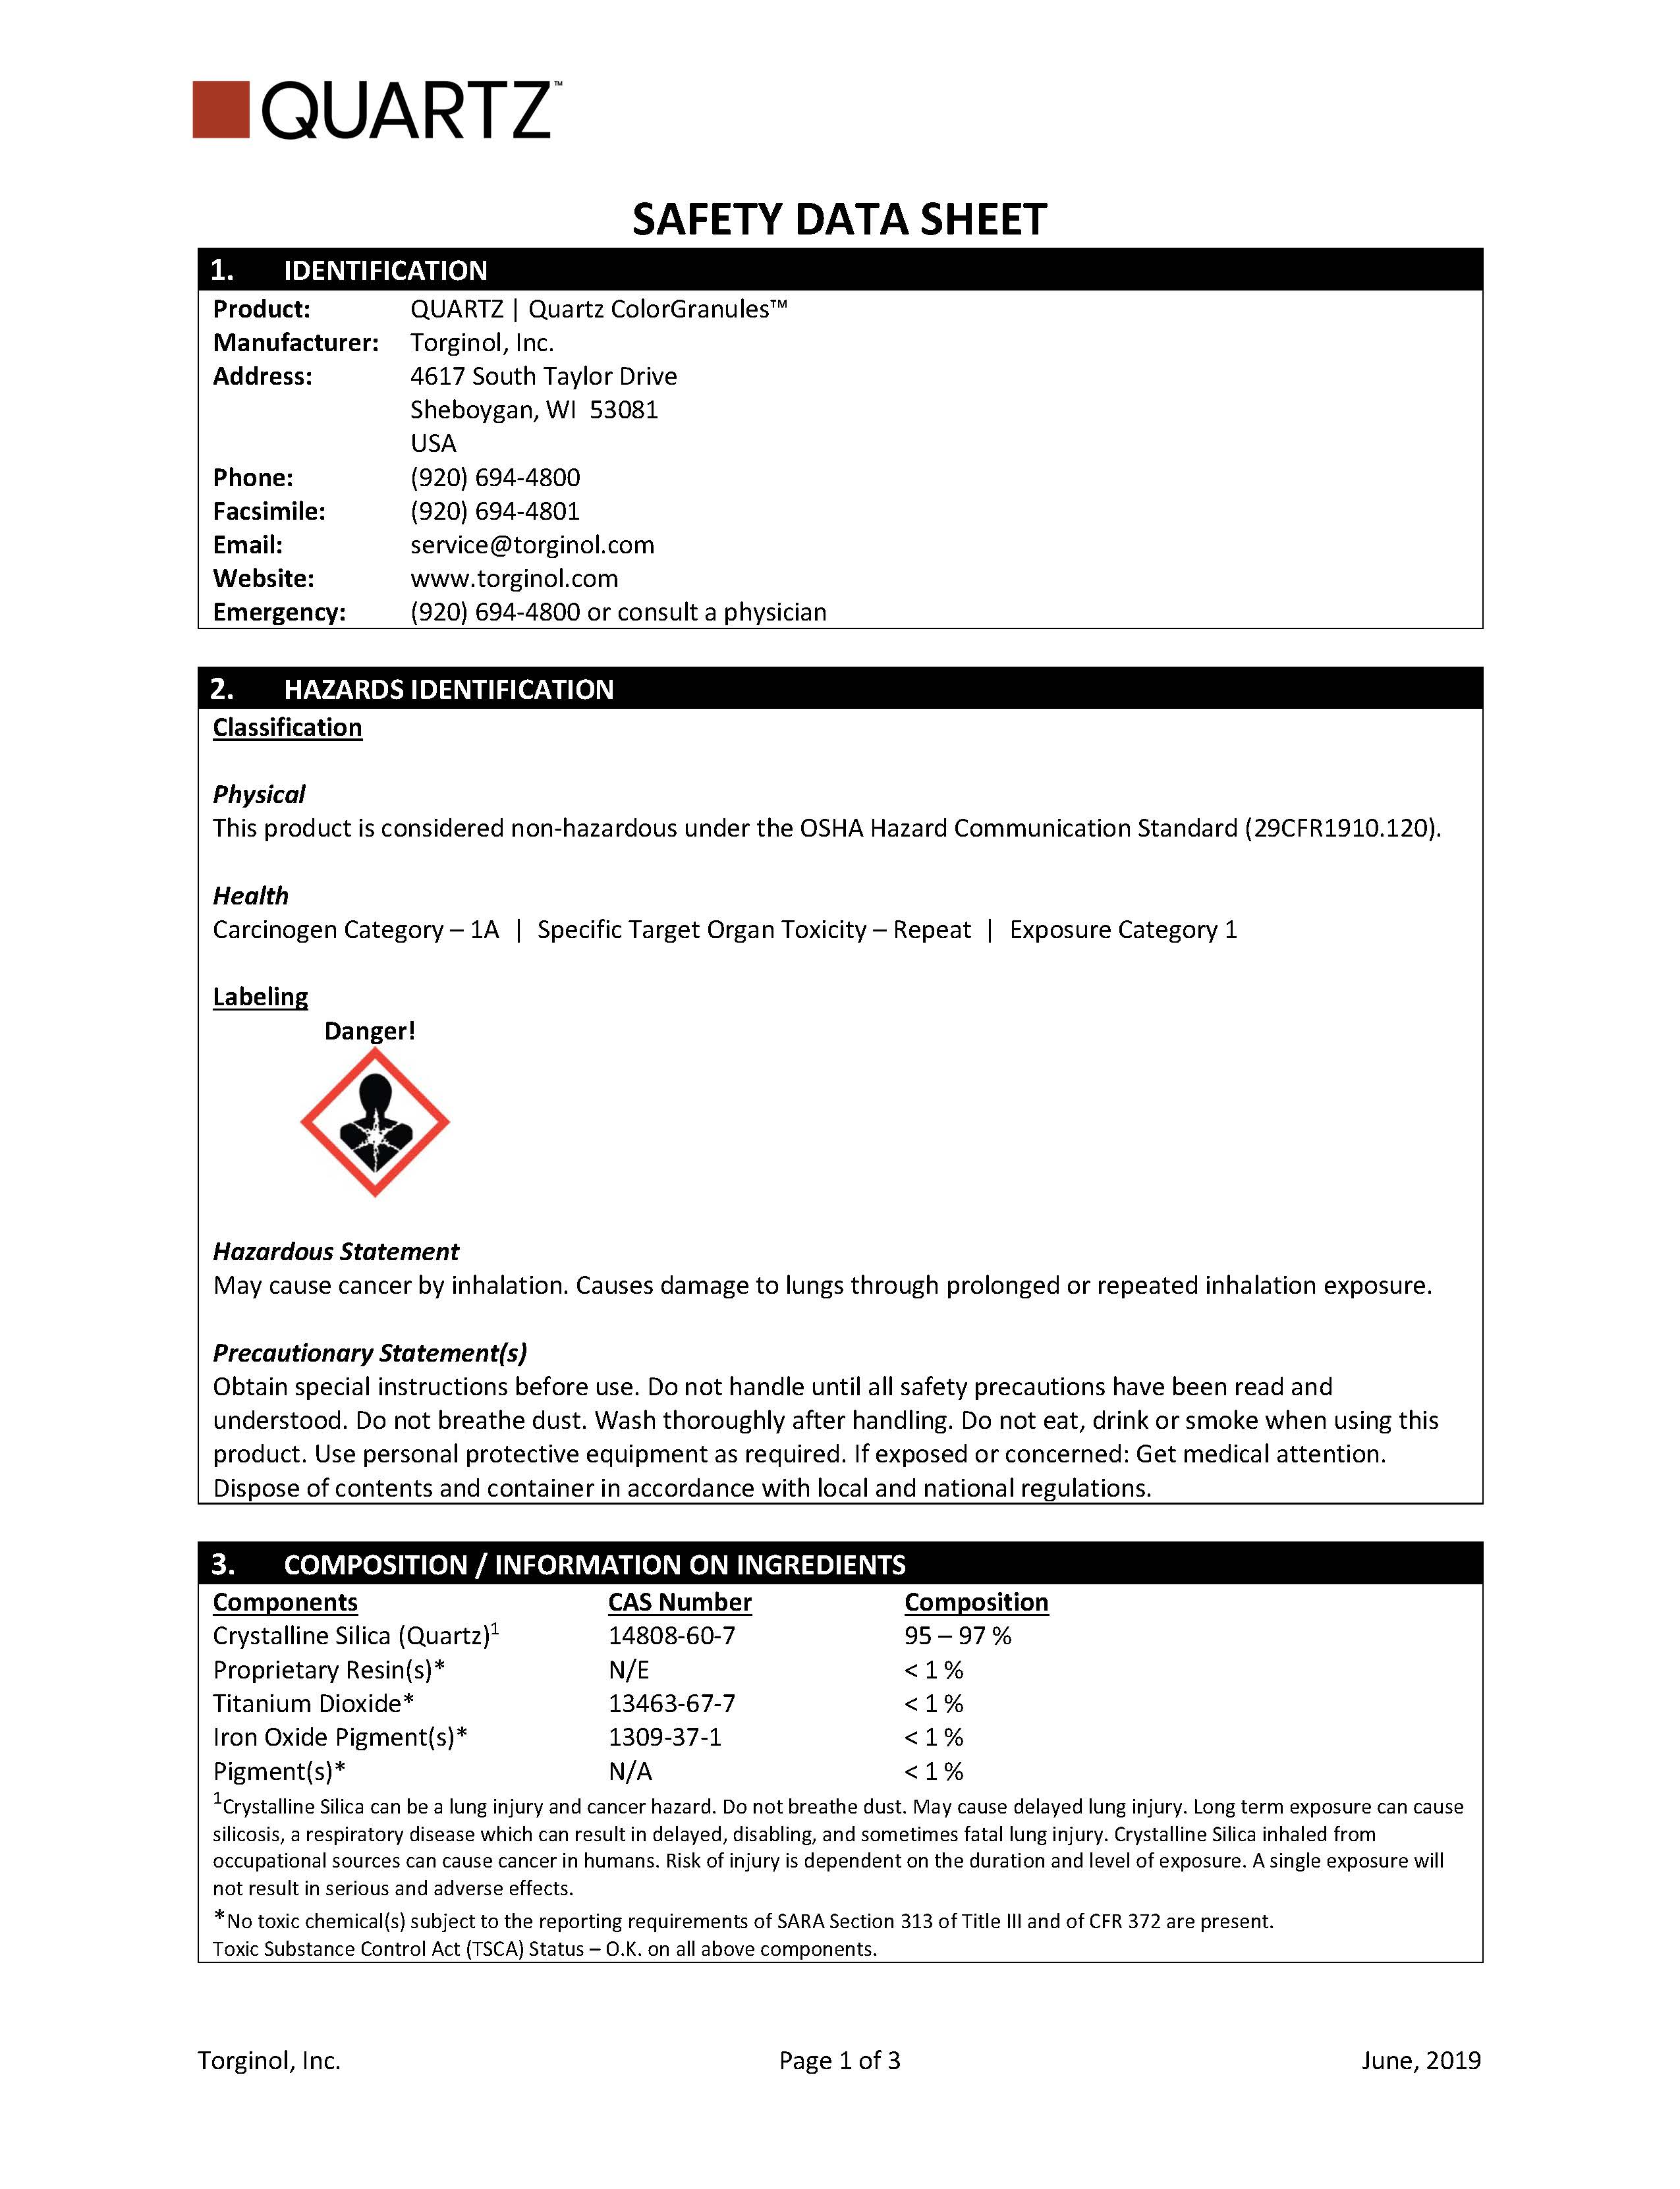 QUARTZ Safety Data Sheet